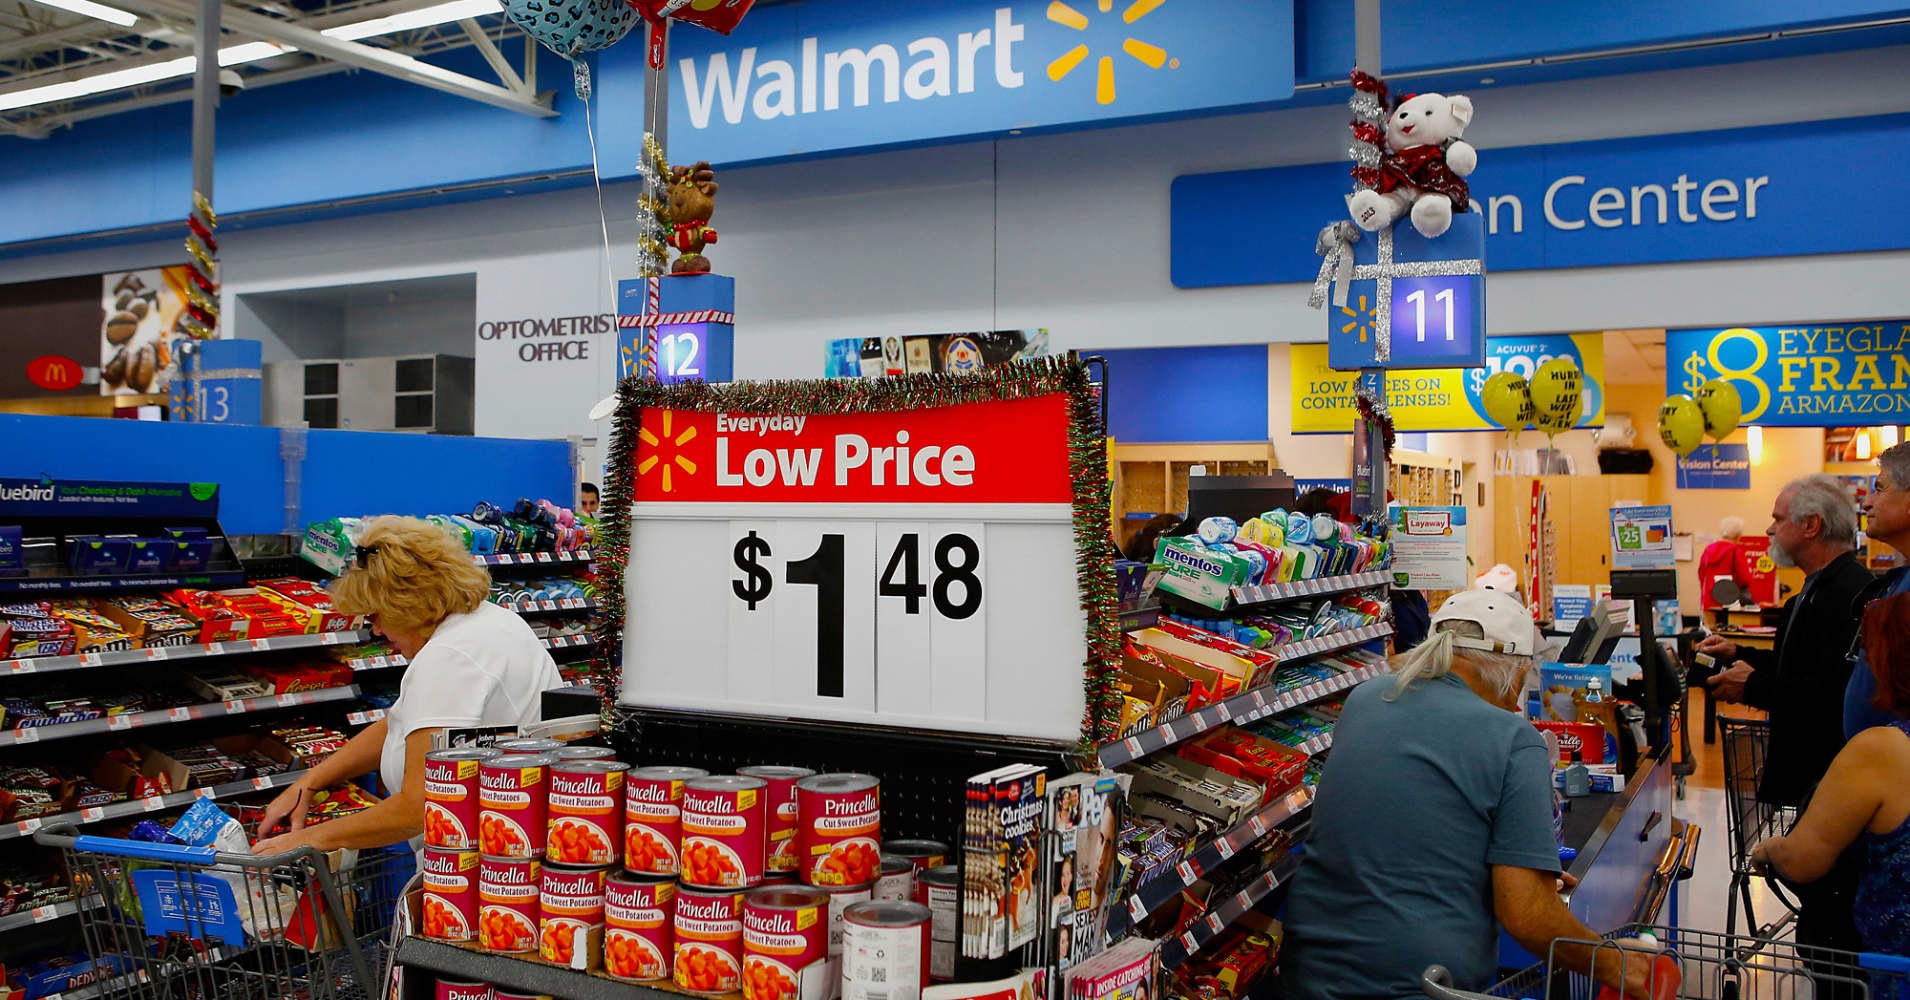 case analysis wal mart stores everyday low prices in china View homework help - walmart case study notes from mgcr 382 at mcgill wal-mart stores: everyday low prices in china chinabig mkt, growing middle class and optimistic/ eager t spend money.